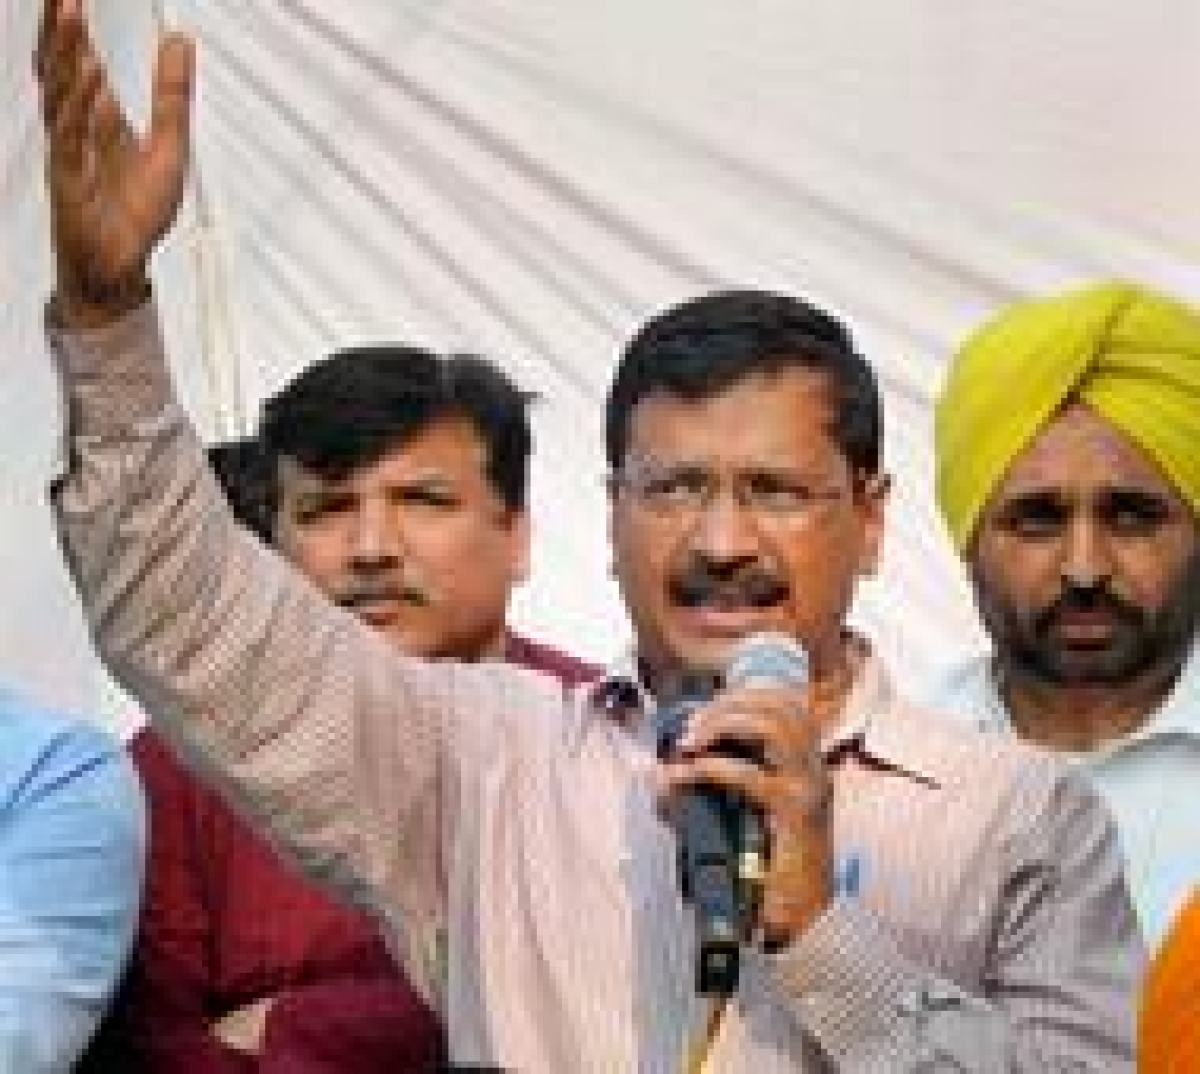 RSS, BJP want odd-even to fail: Arvind Kejriwal